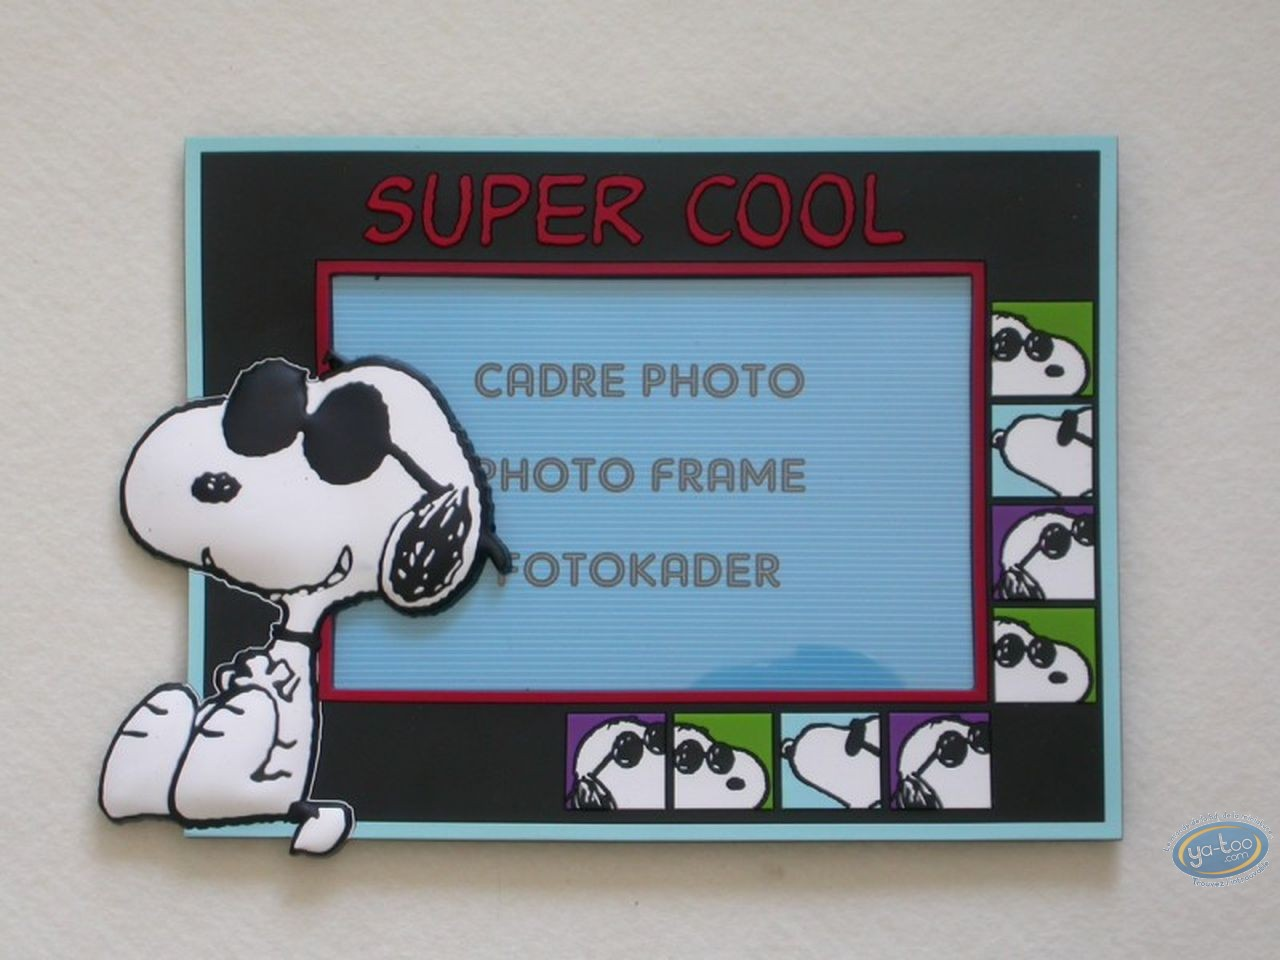 Cadre photo, Snoopy : Snoopy